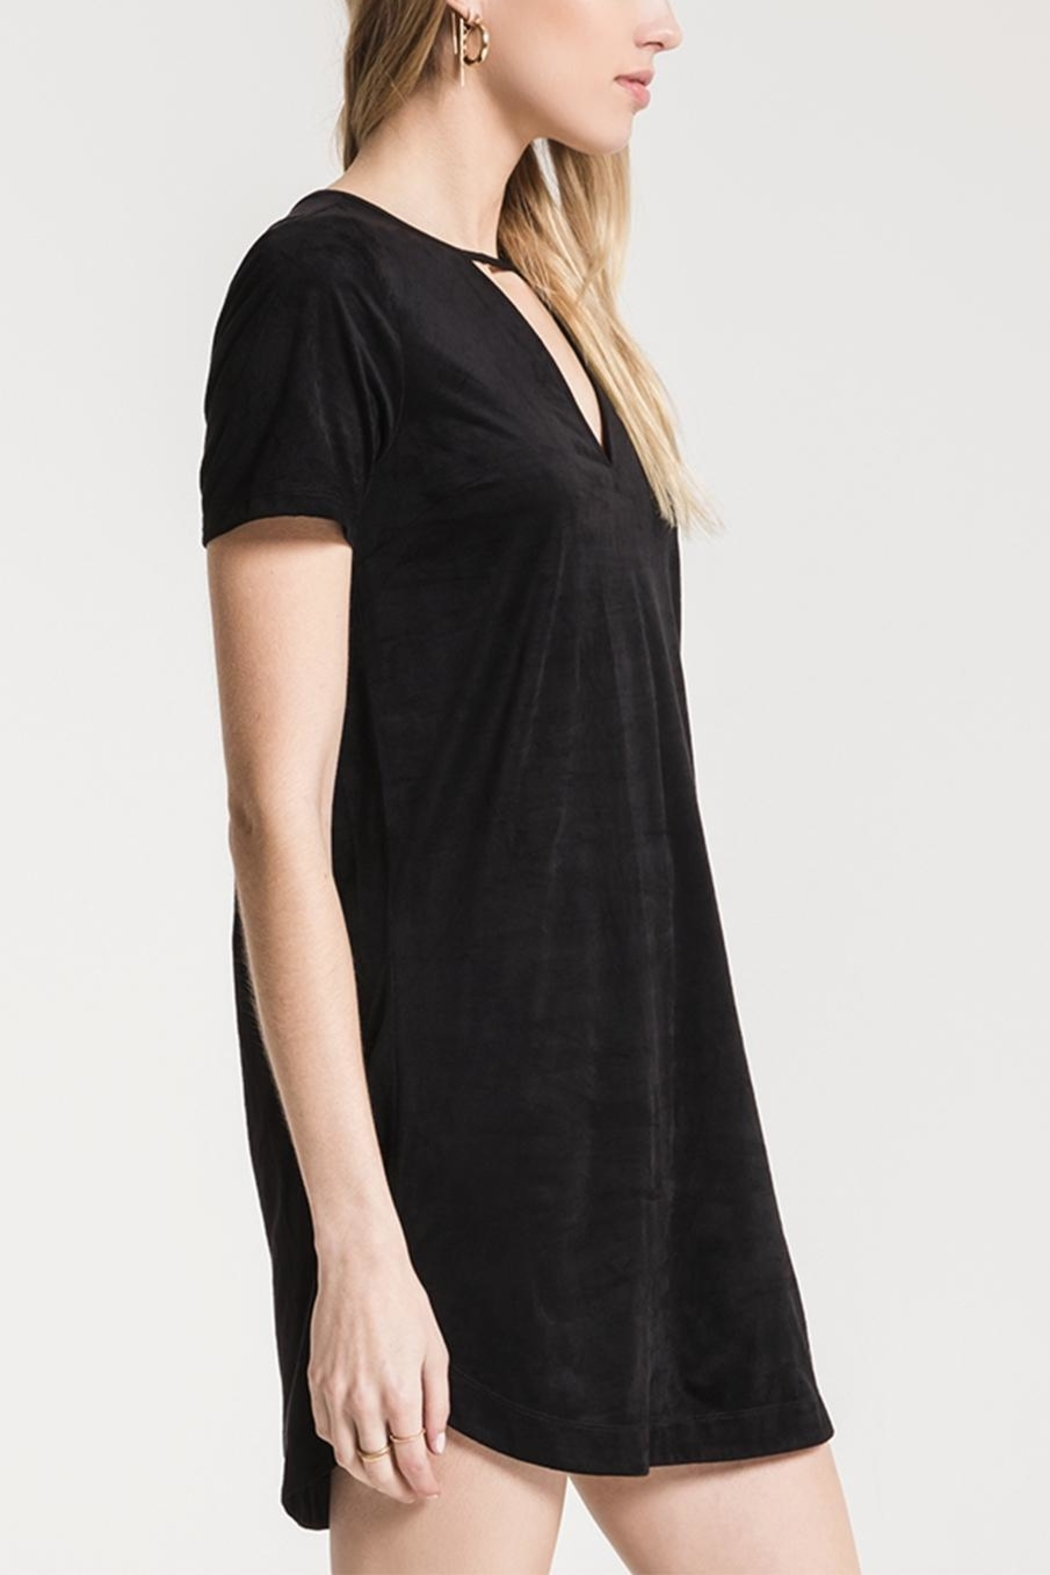 z supply Suede Cut-Out Dress - Front Full Image